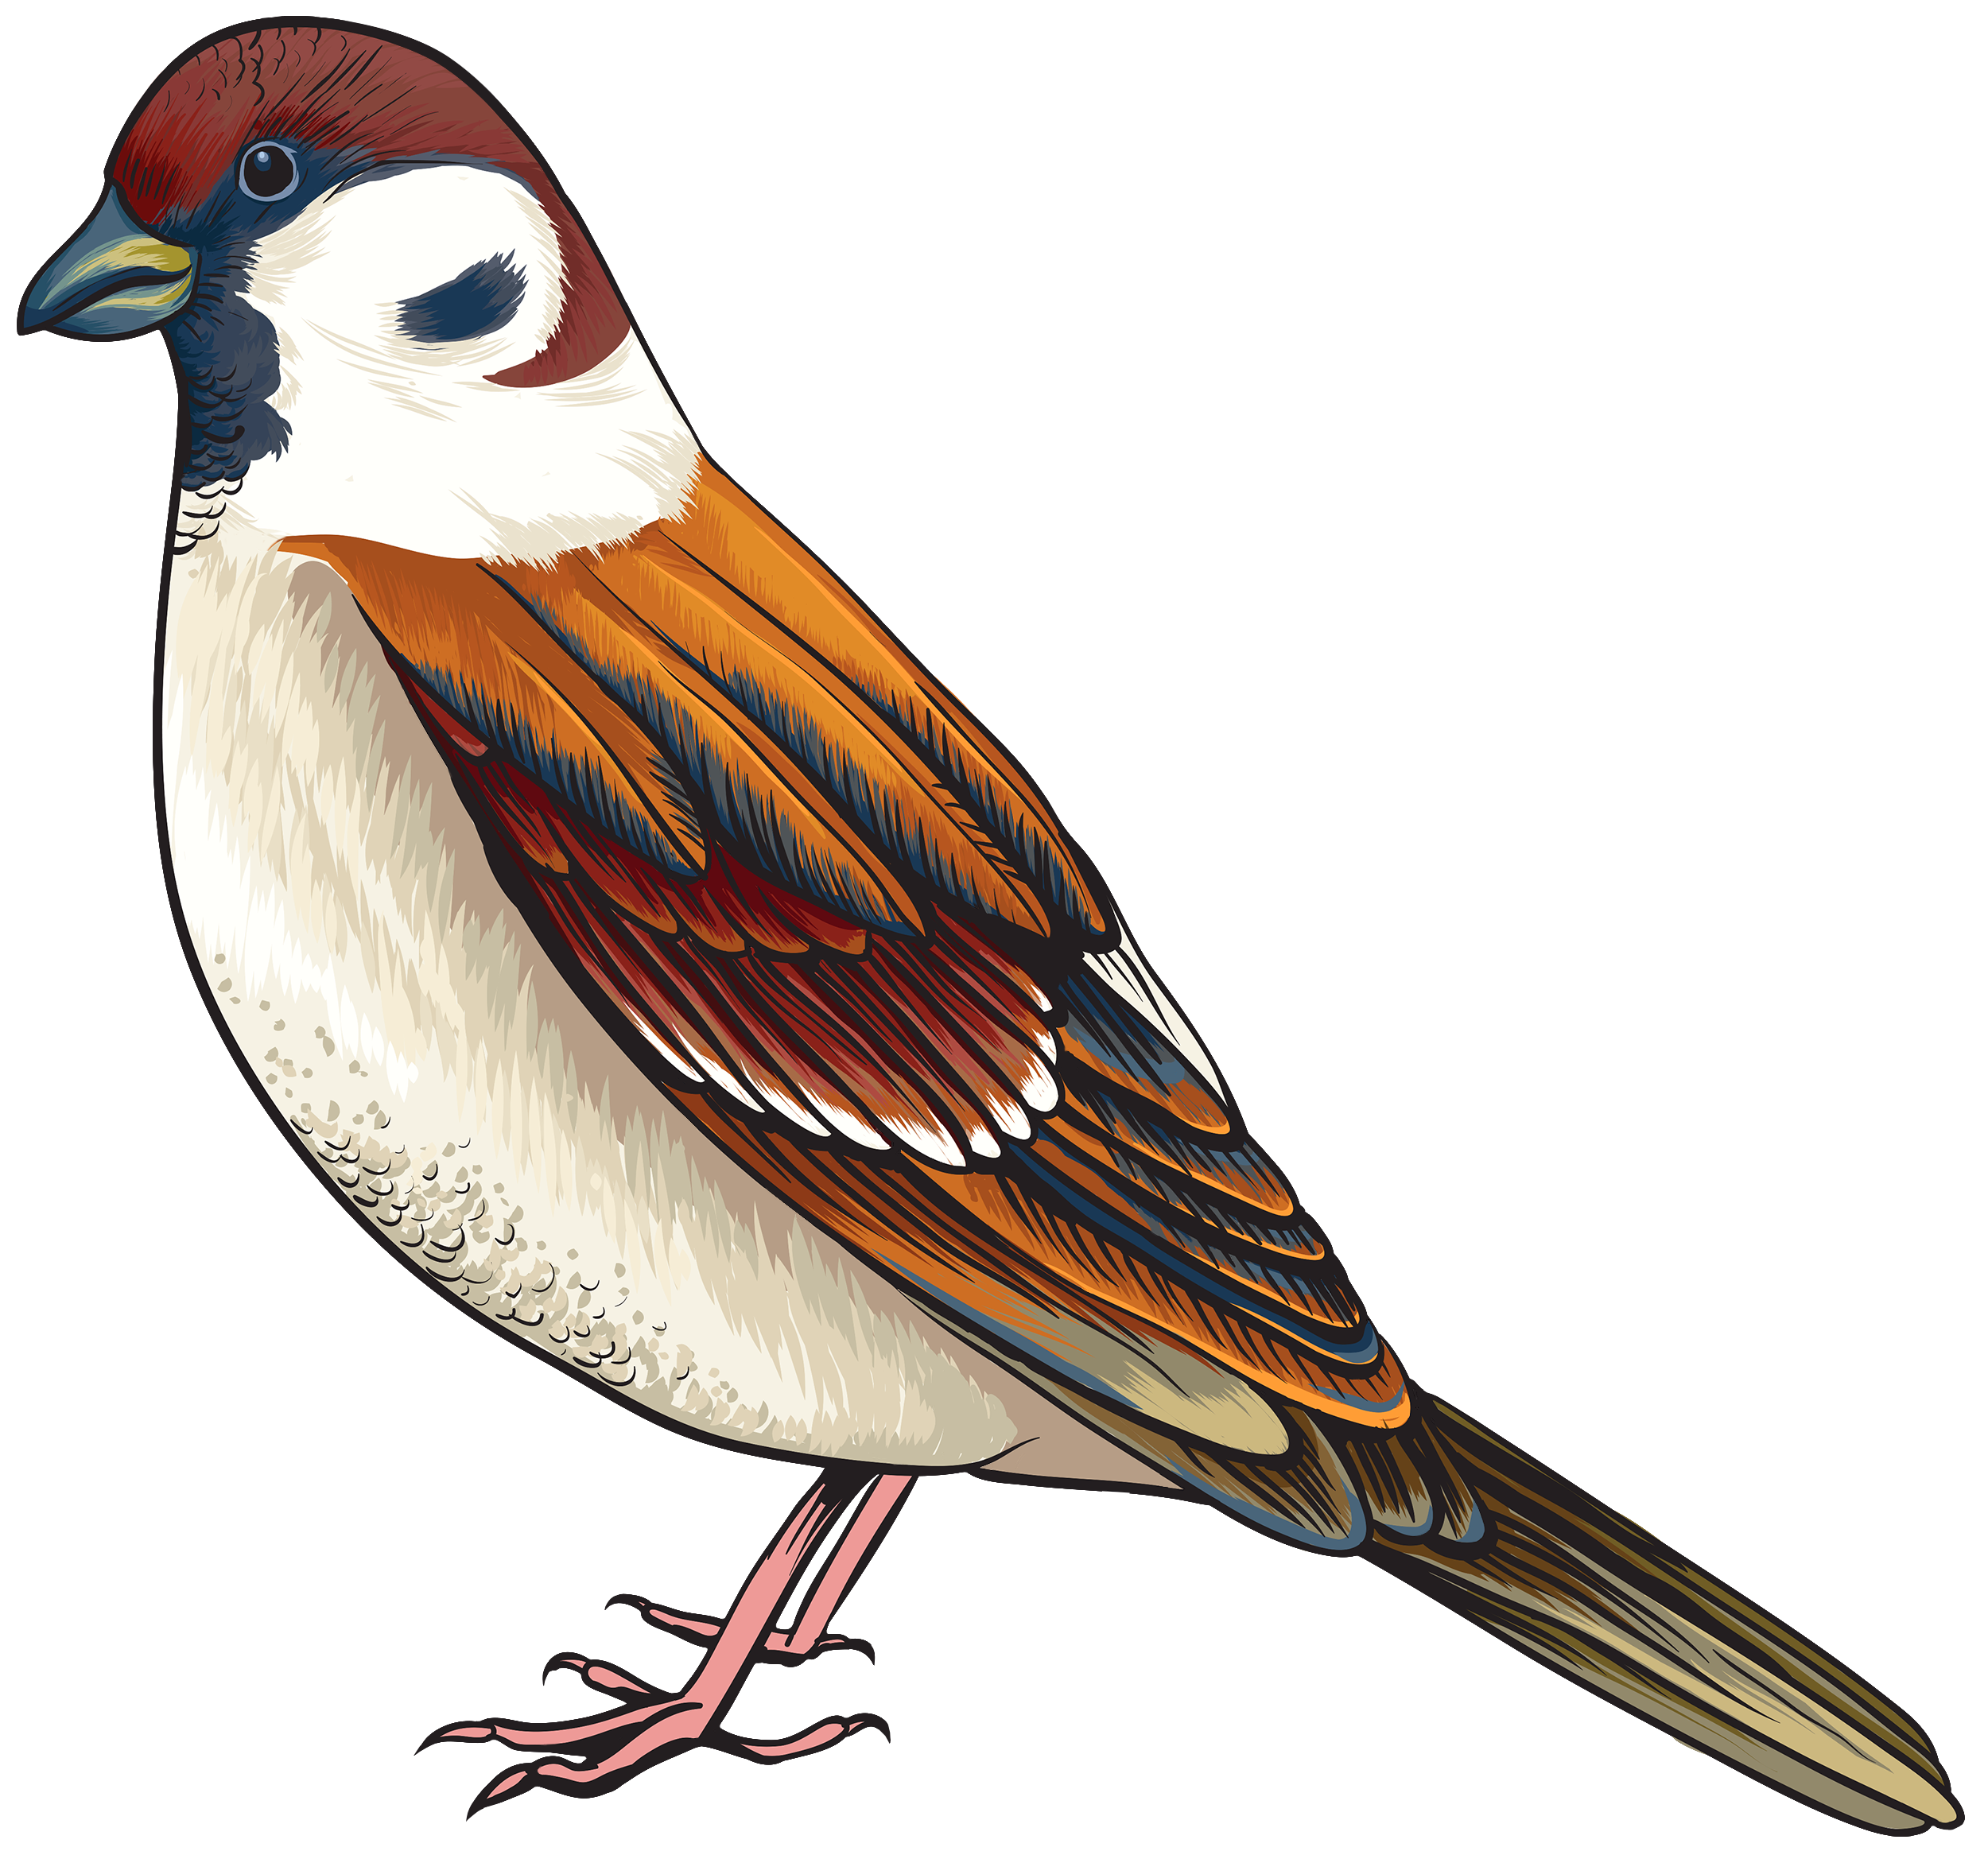 Worm clipart realistic. Bird png best web